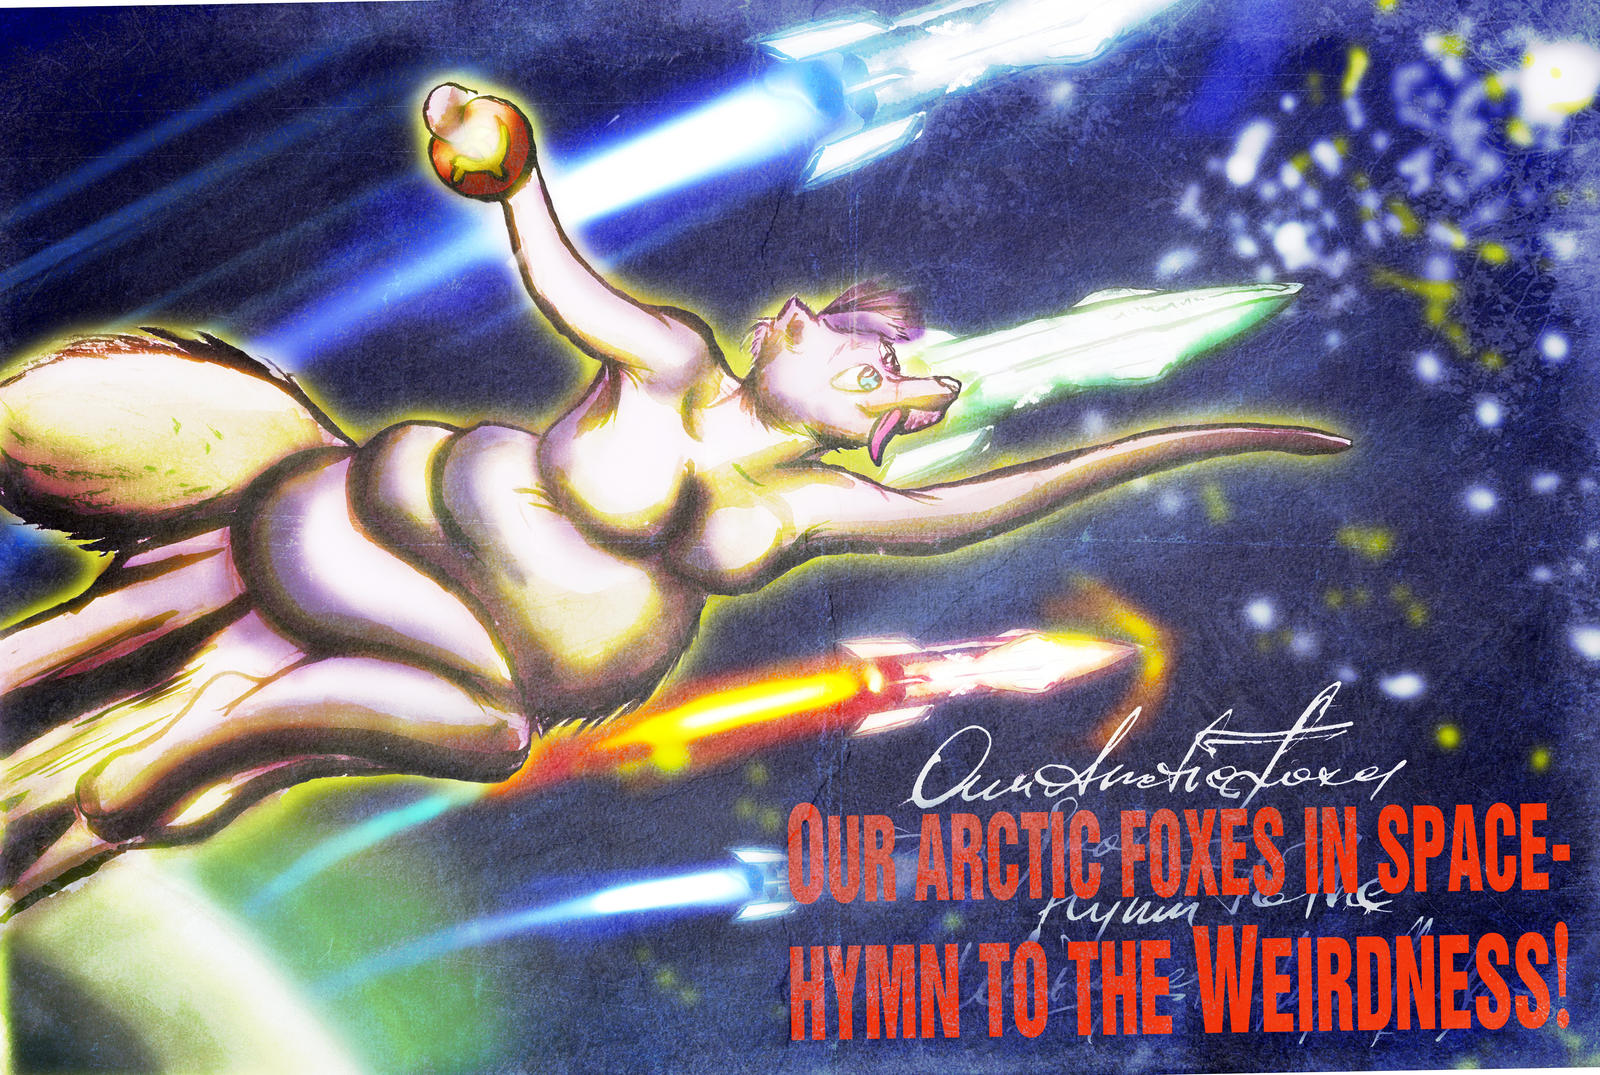 Our Arctic Foxes In Space - Hymn To The Weirdness!